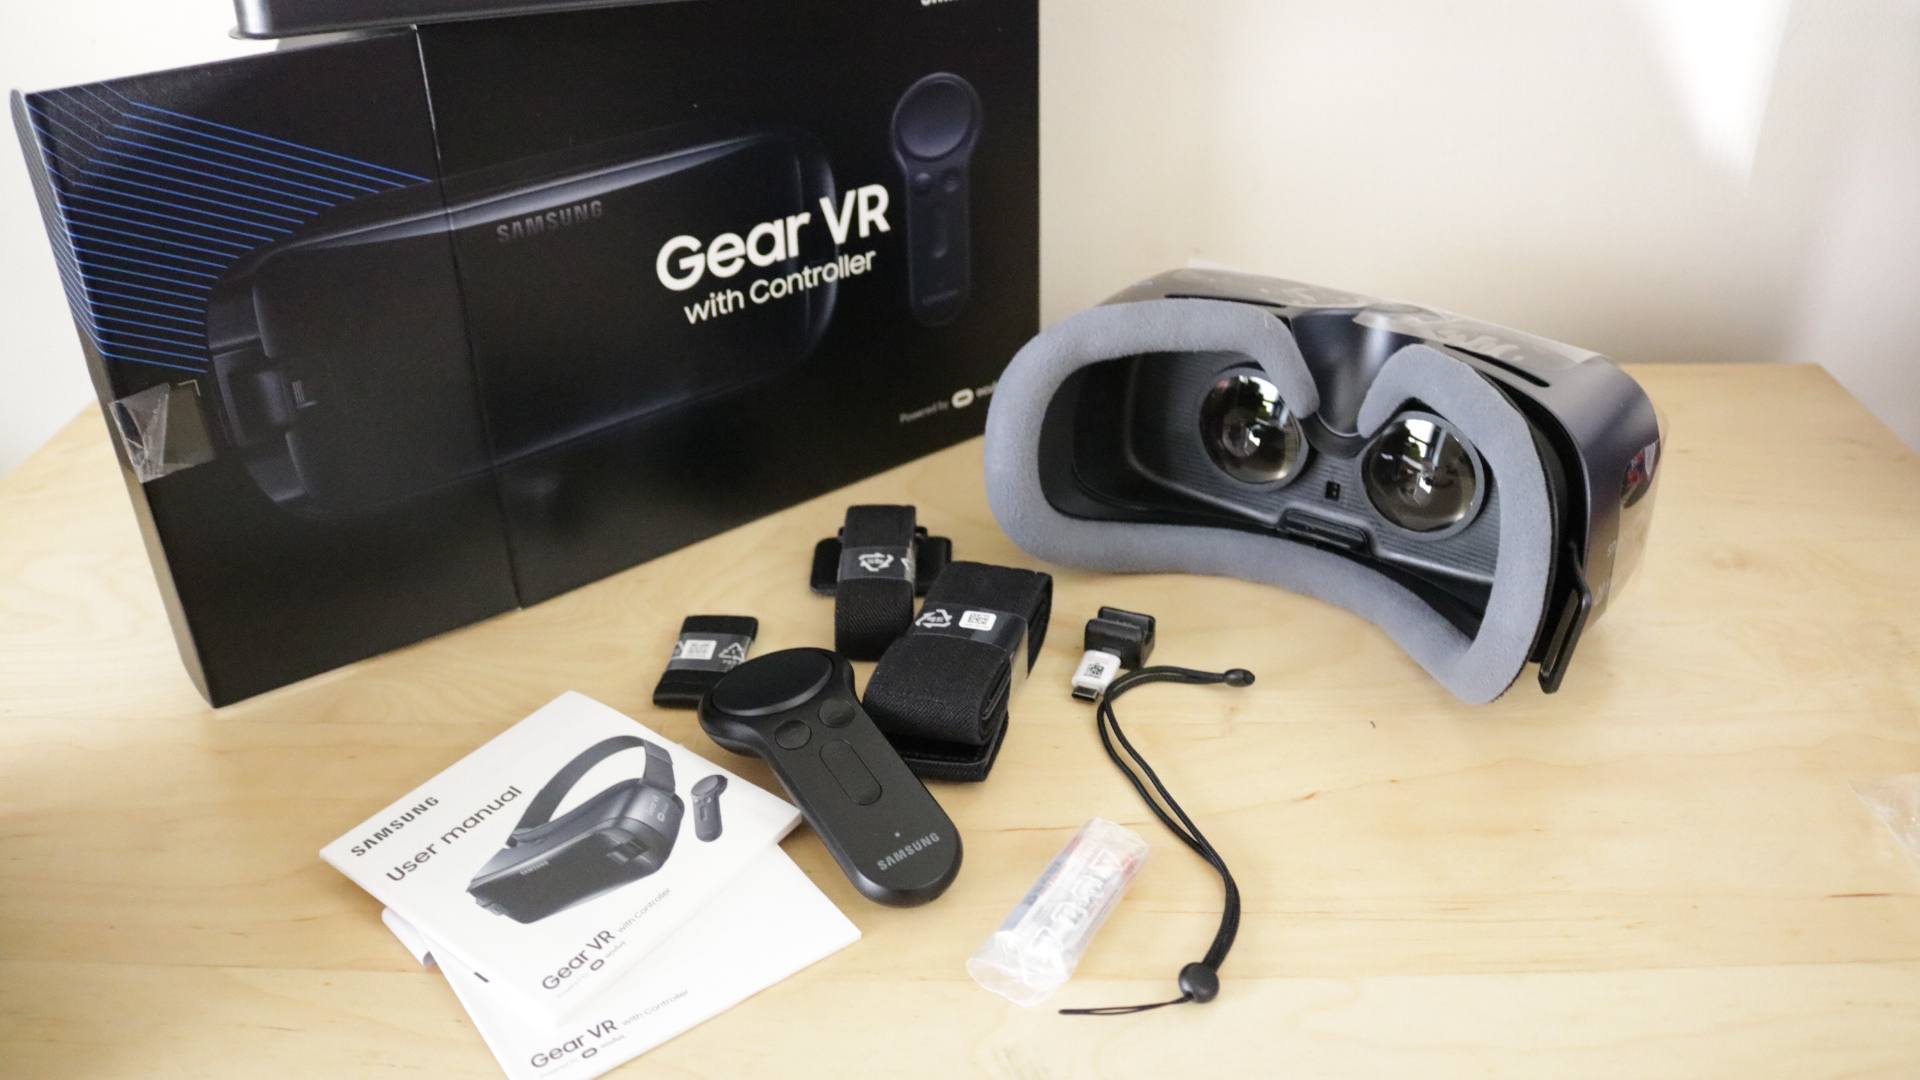 Samsung Gear VR Review, Samsung Gear VR 2017 Review, Samsung VR Review